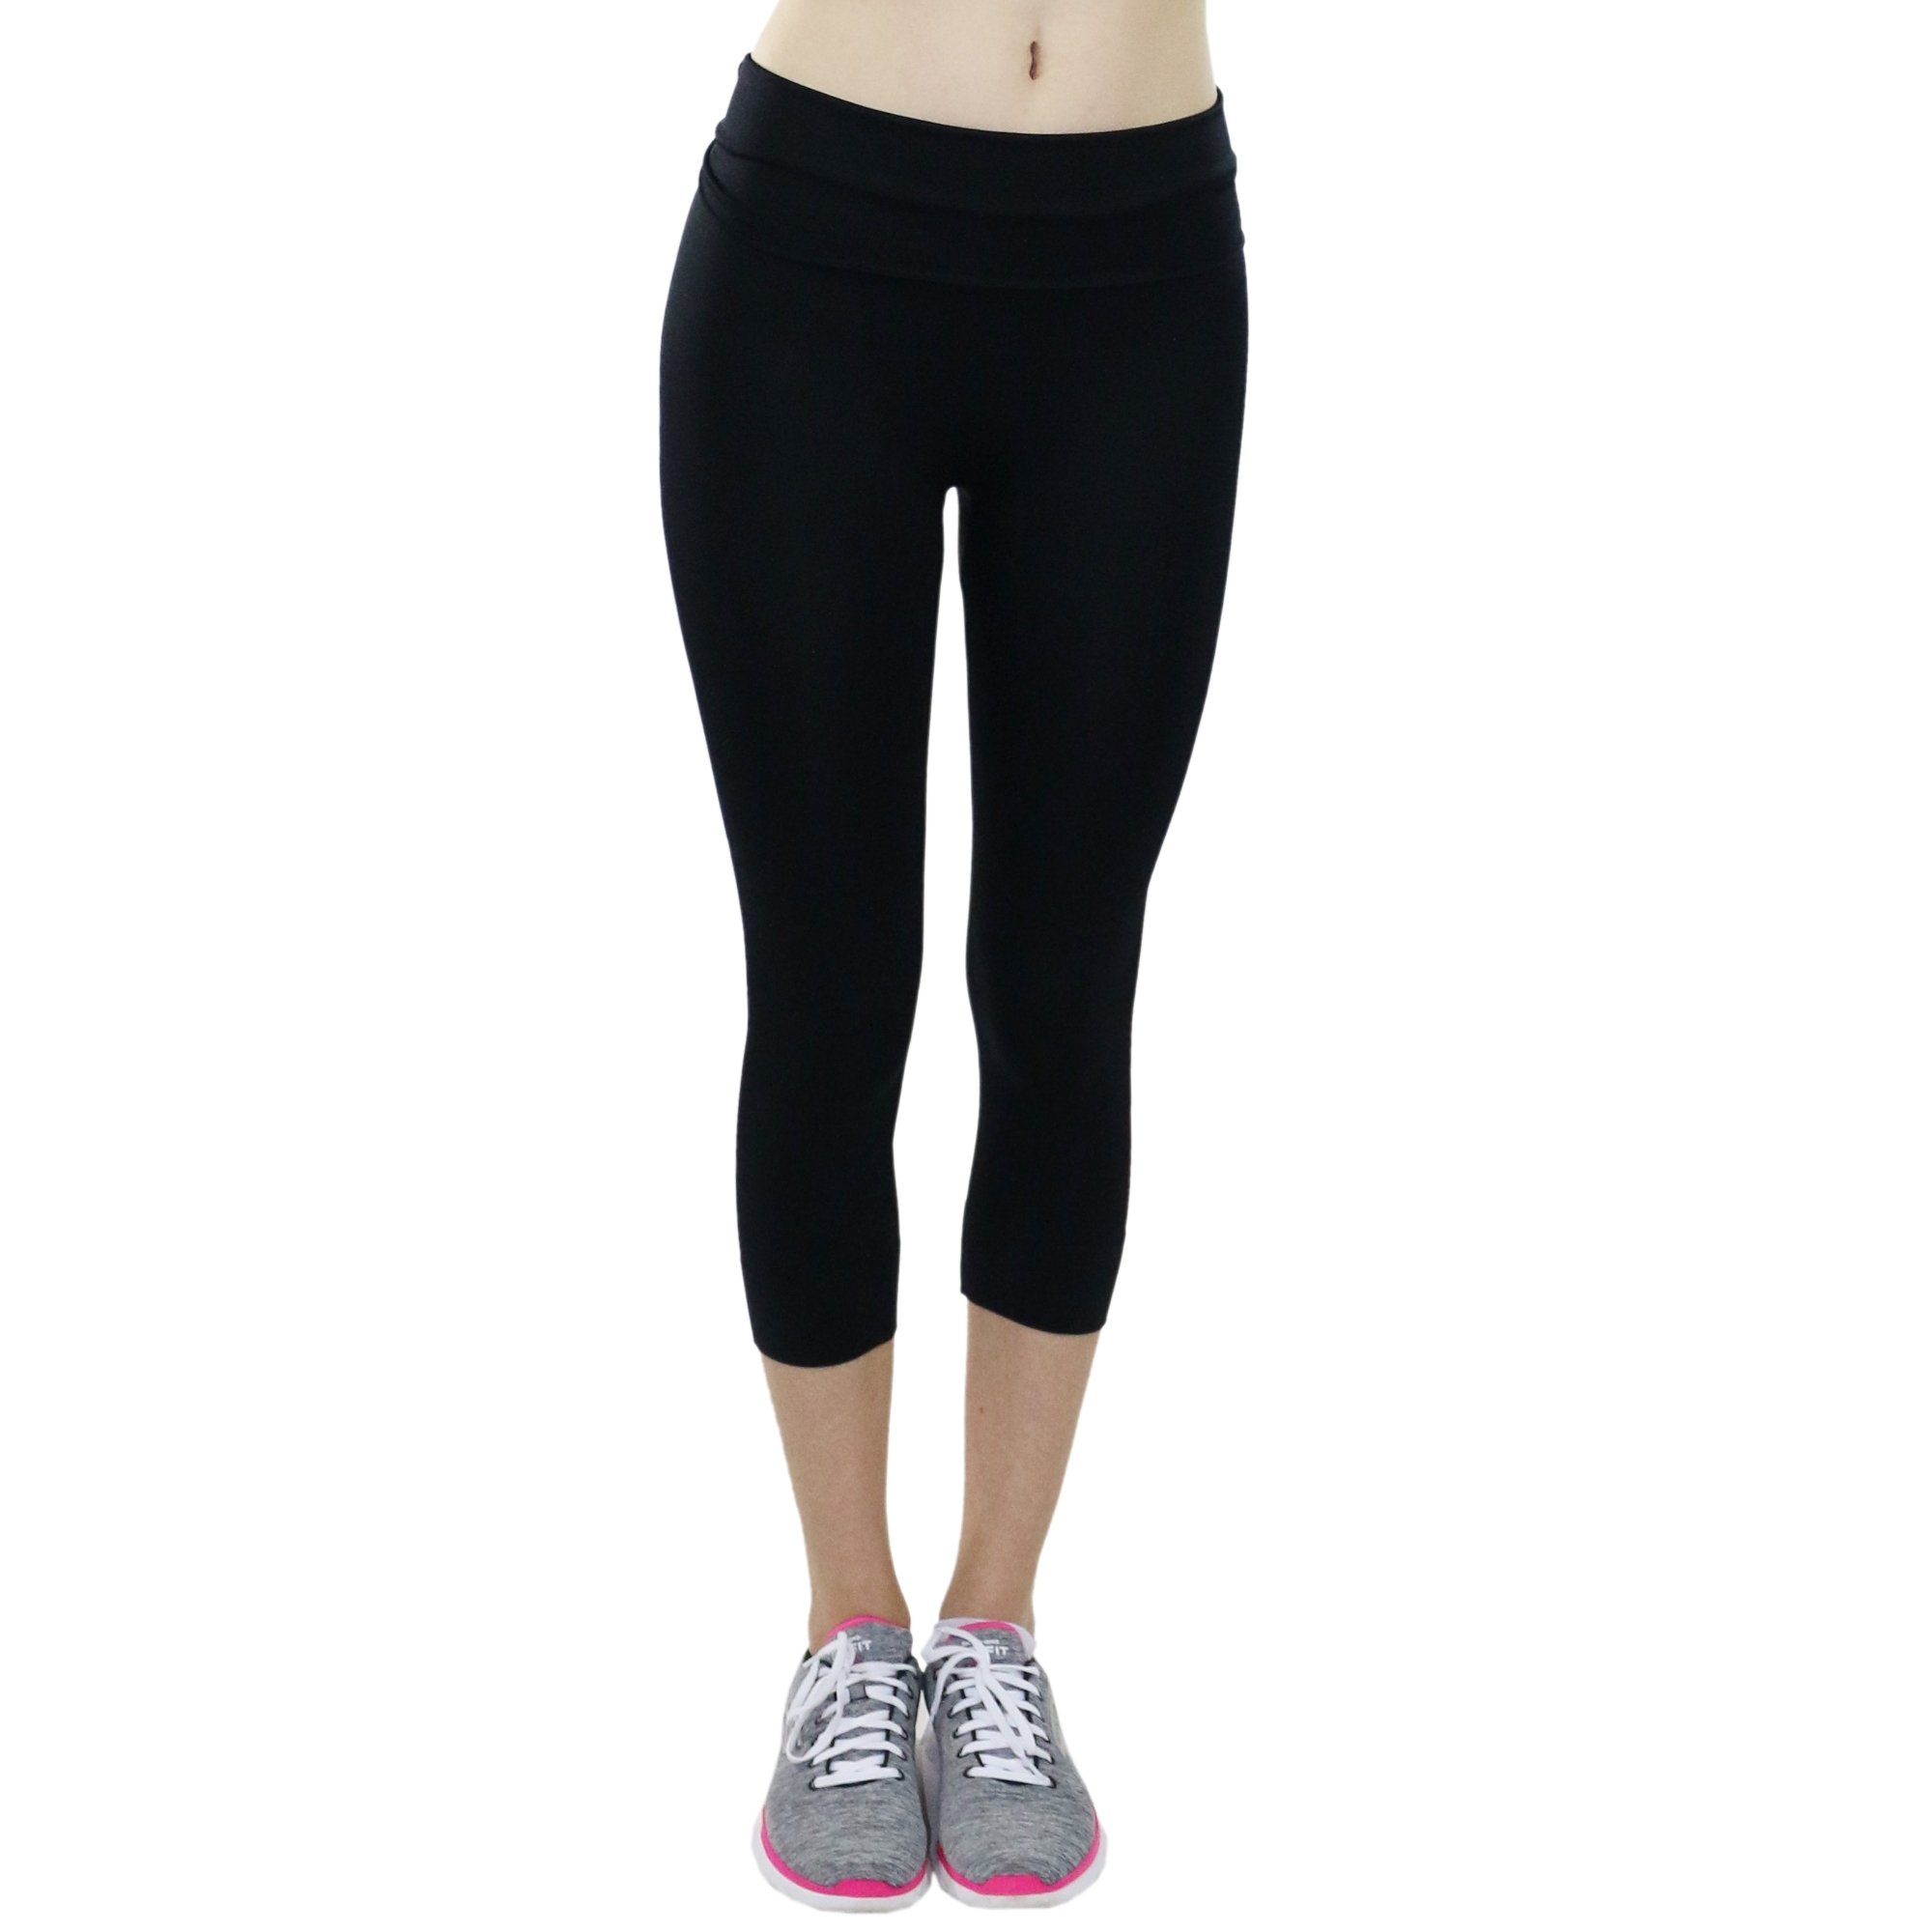 51ccc19a88 Lifestyle: yoga pants, activewear, printed leggings, yoga tops ...